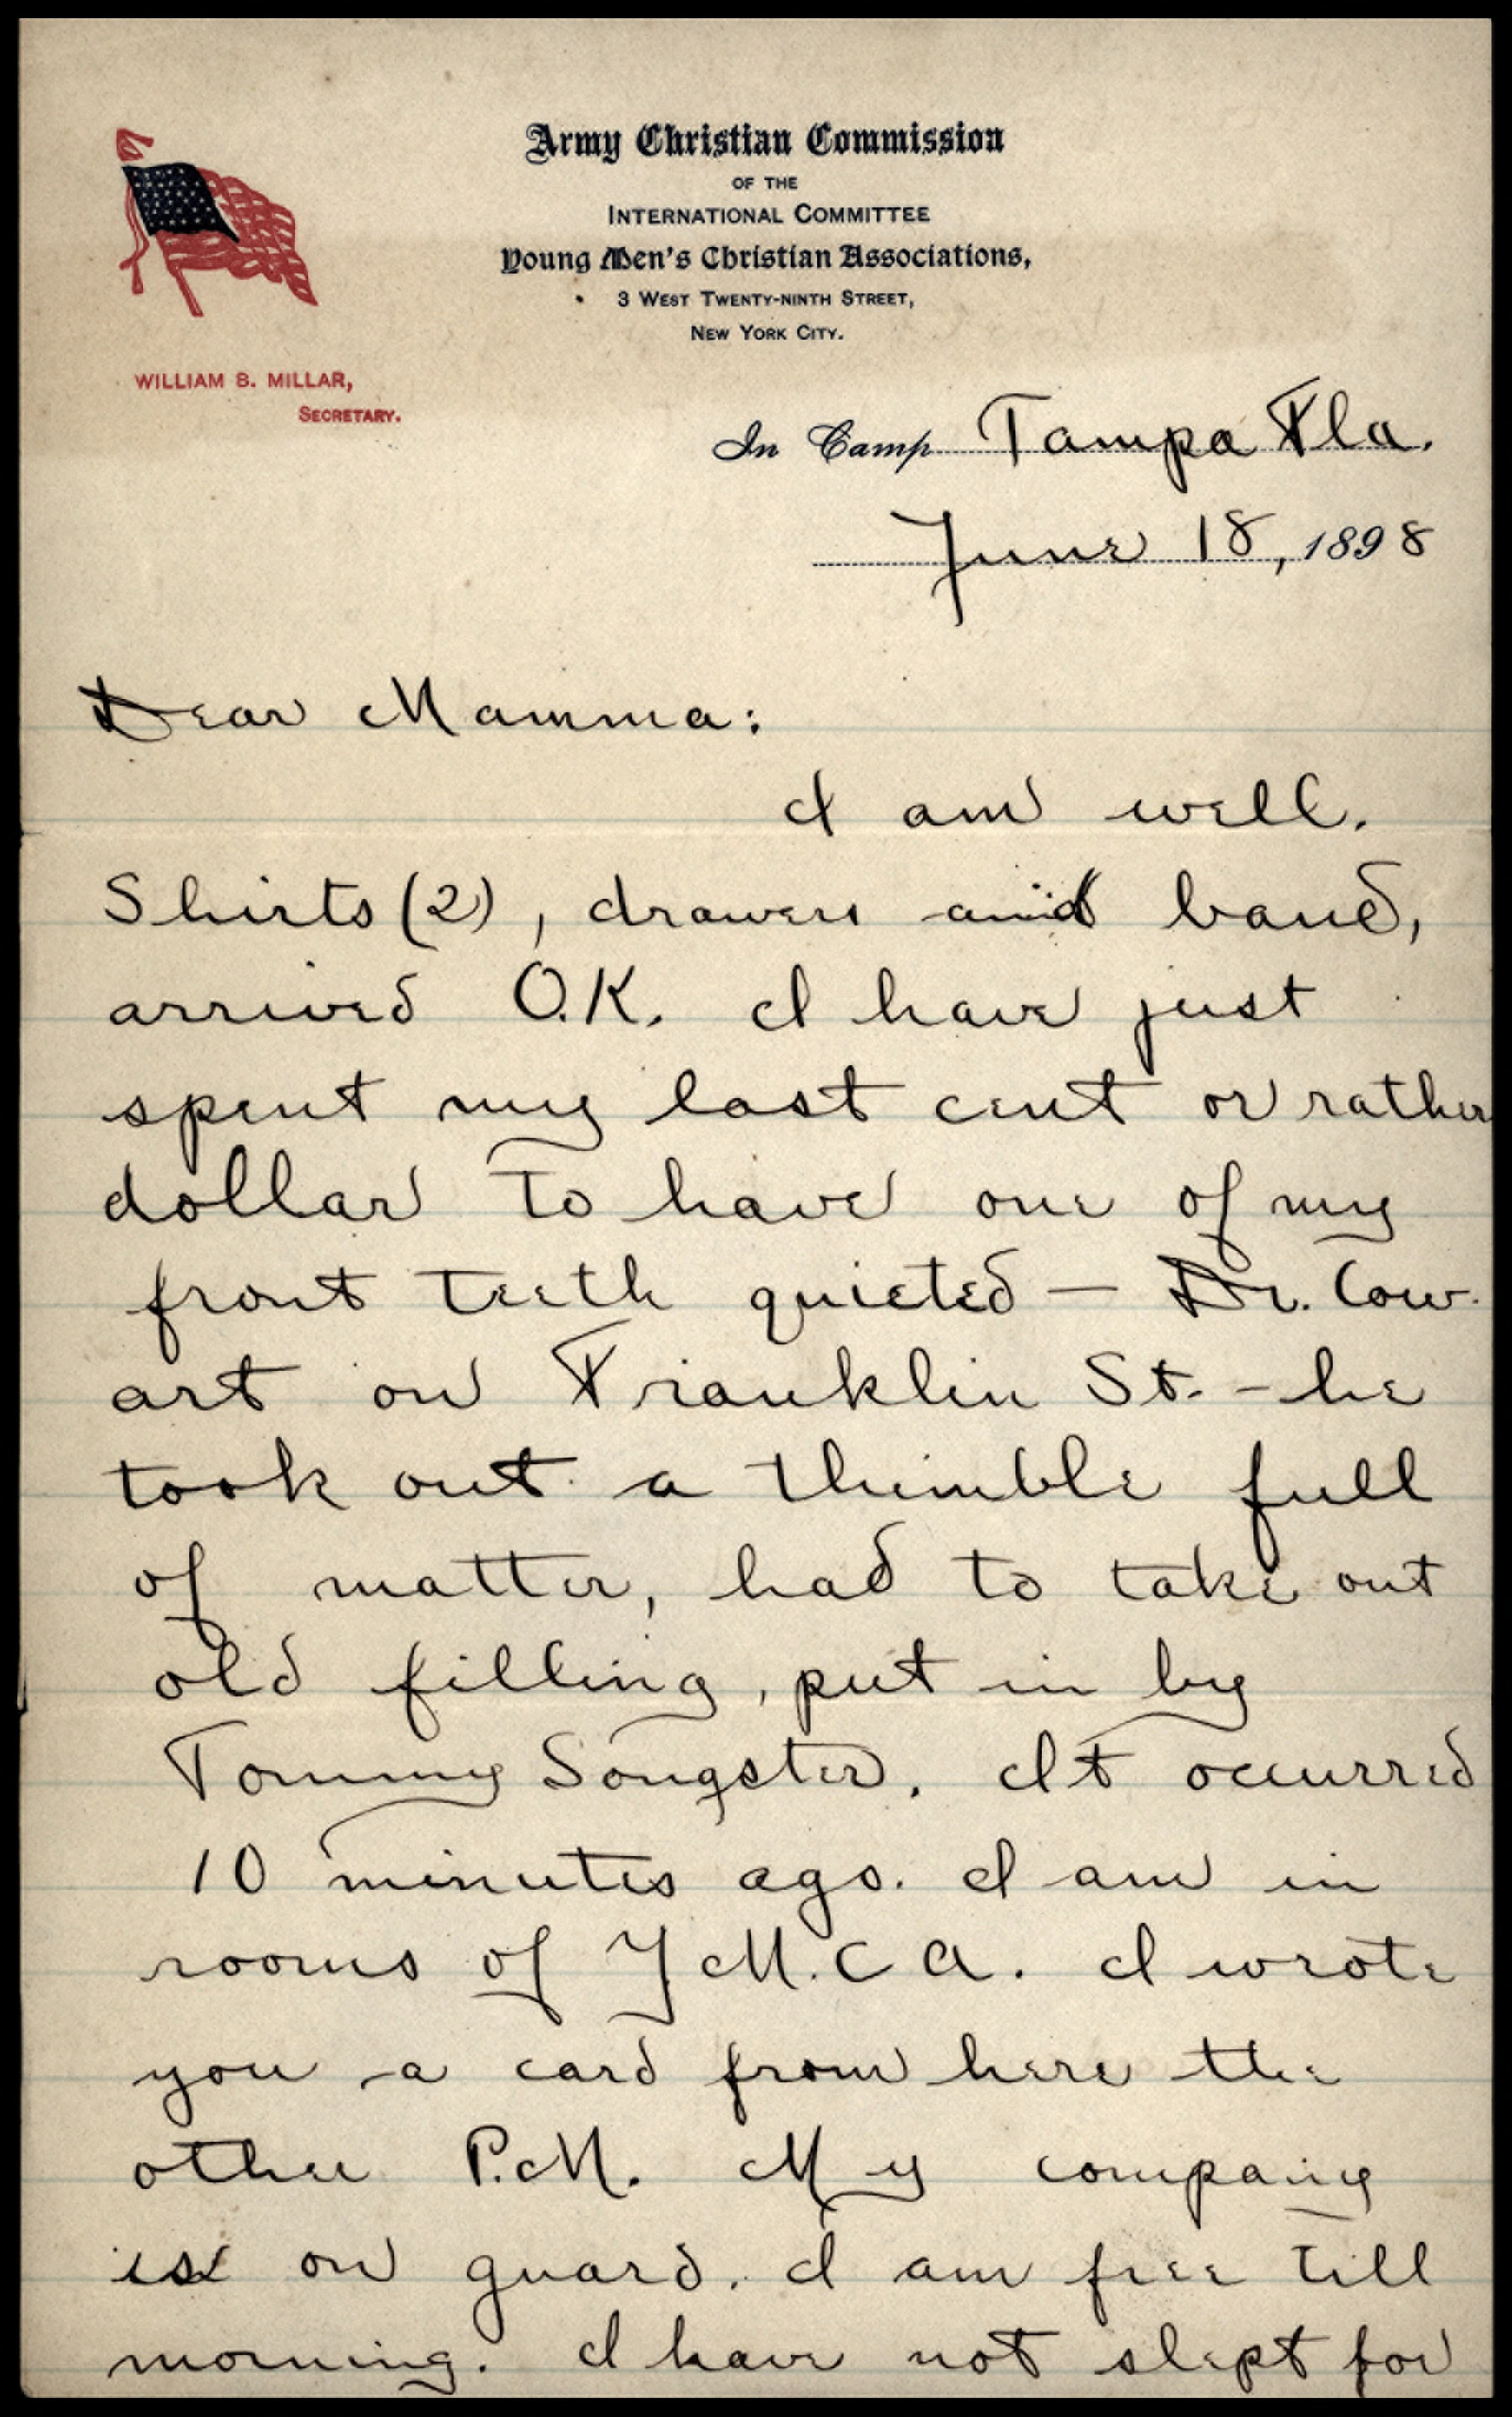 Scan of letter dated June 18, 1898, handwritten script is illegible